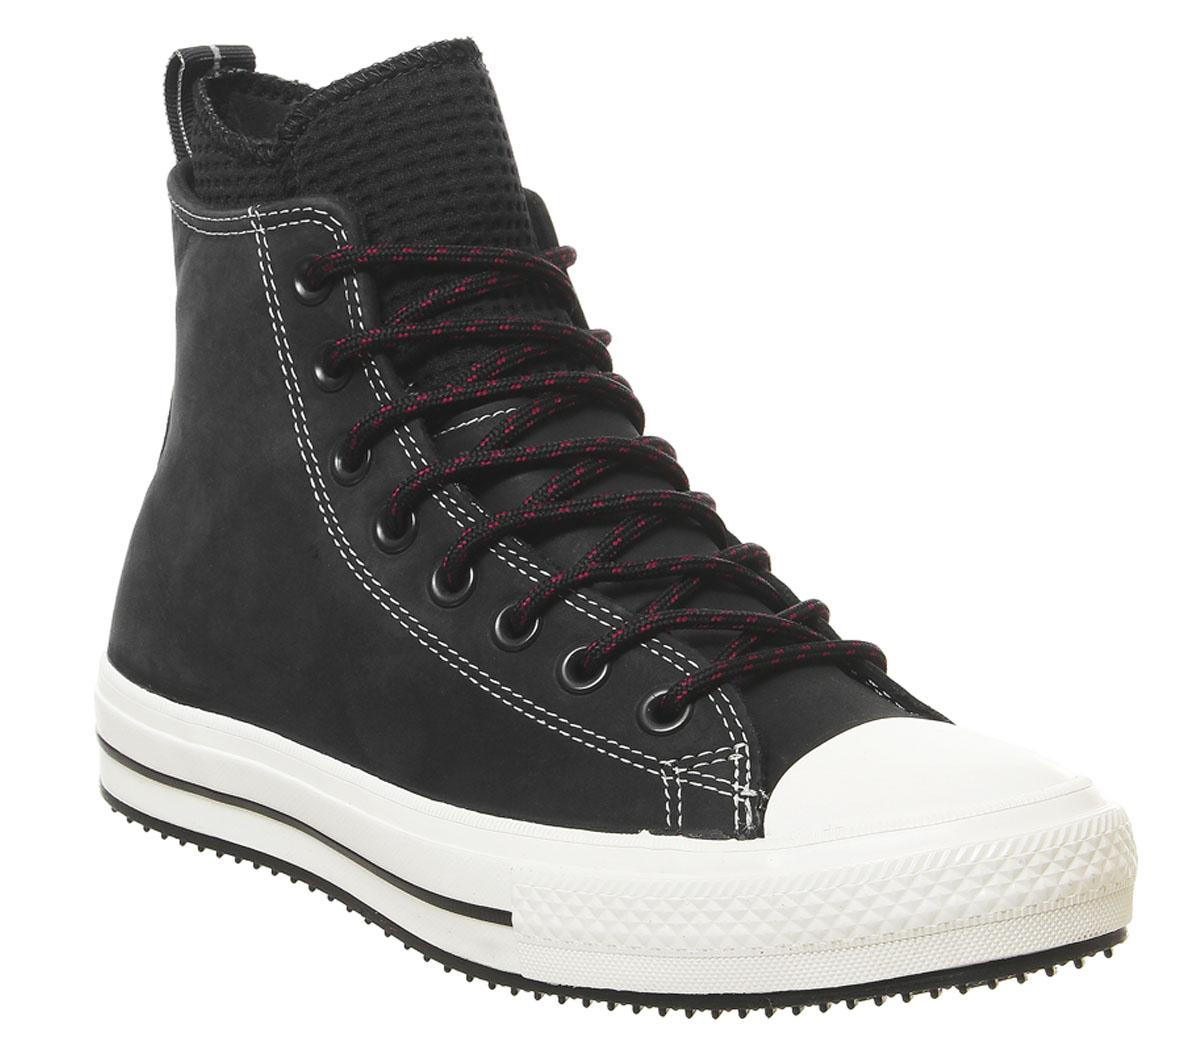 Chuck Taylor All Star Wp Boots